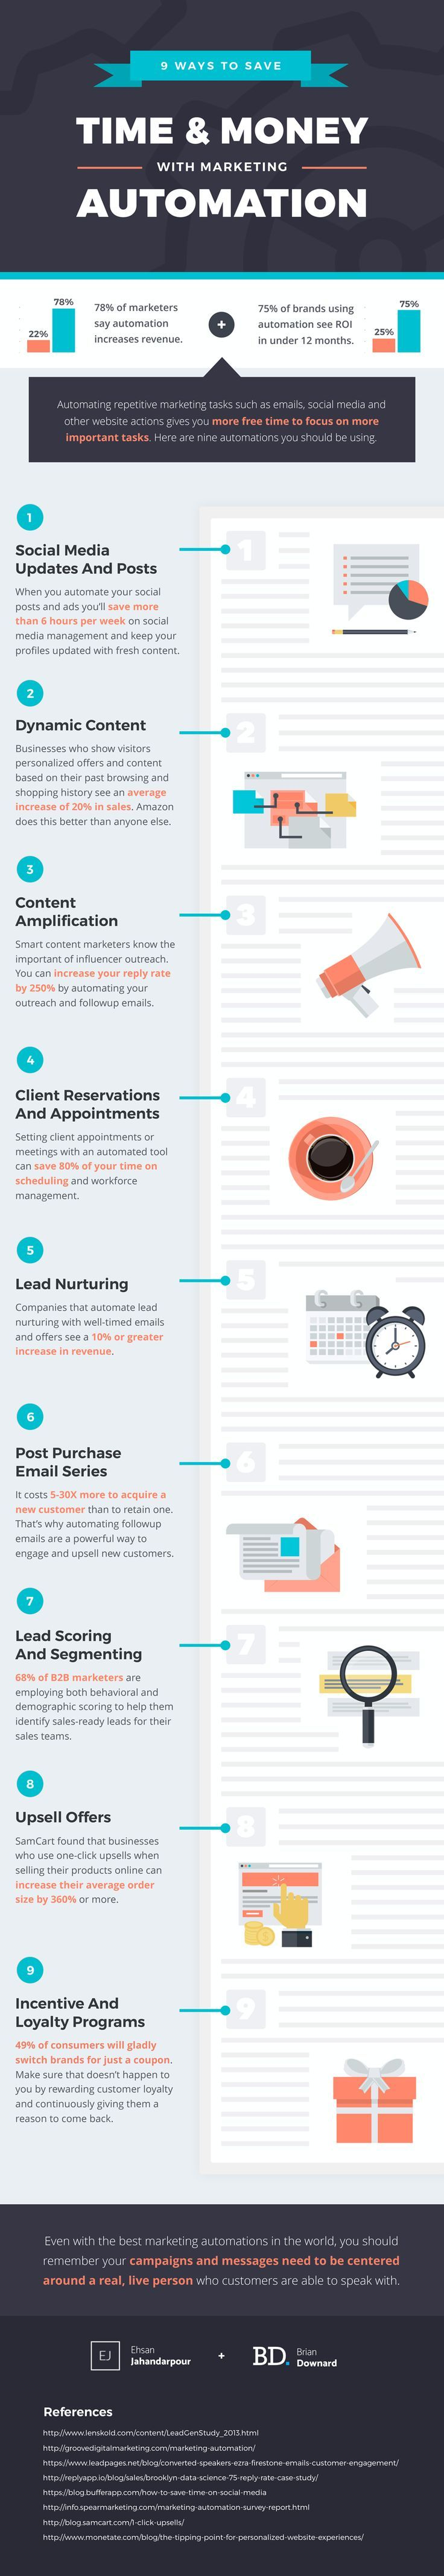 9 Ways to Save Time and Money With Marketing Automation